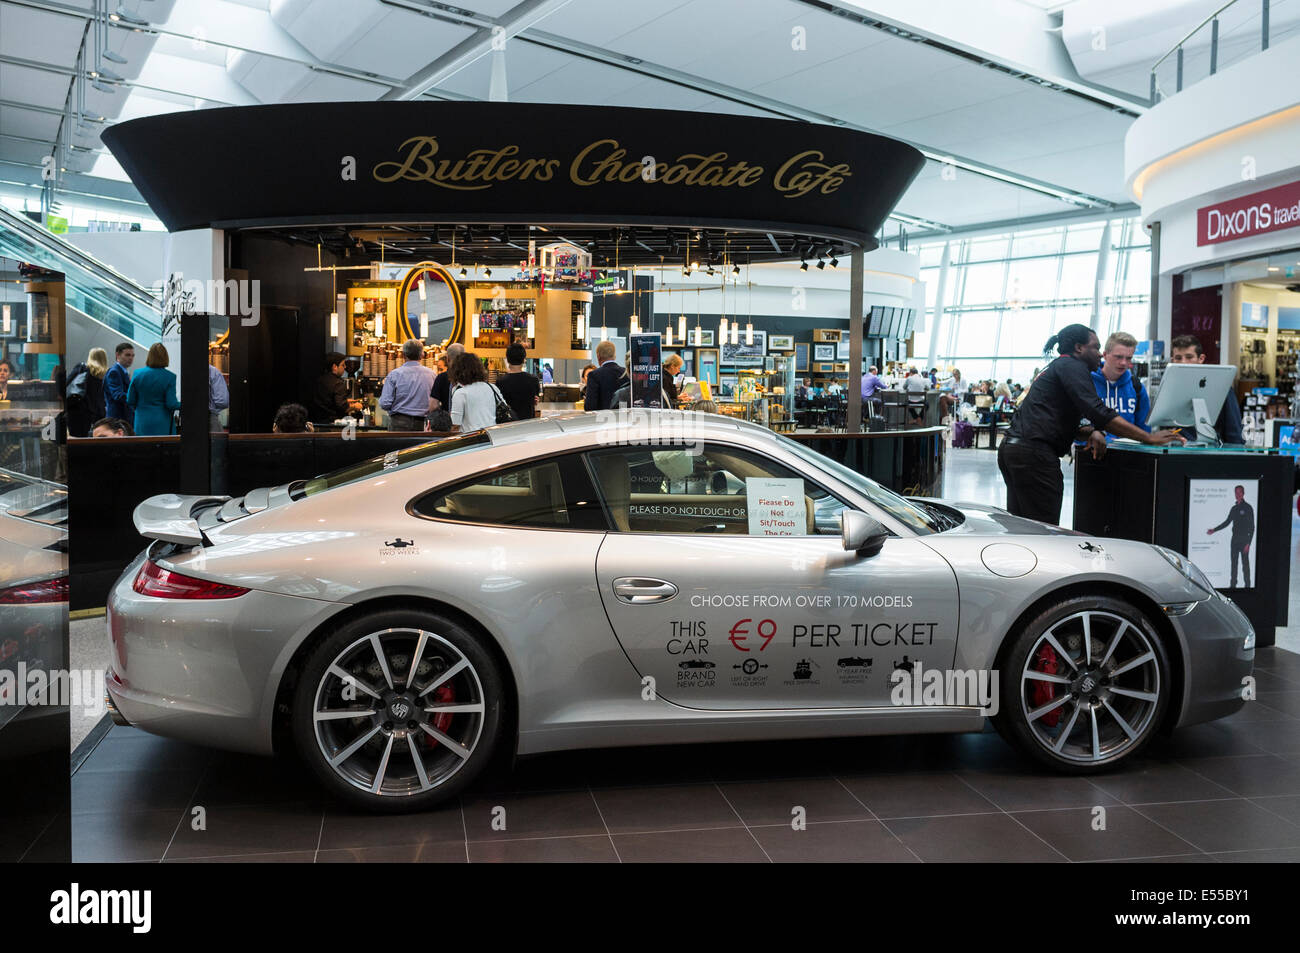 Porsche car on display as prize for lottery run at airport, airside at terminal 2 in Dublin airport, Ireland. - Stock Image